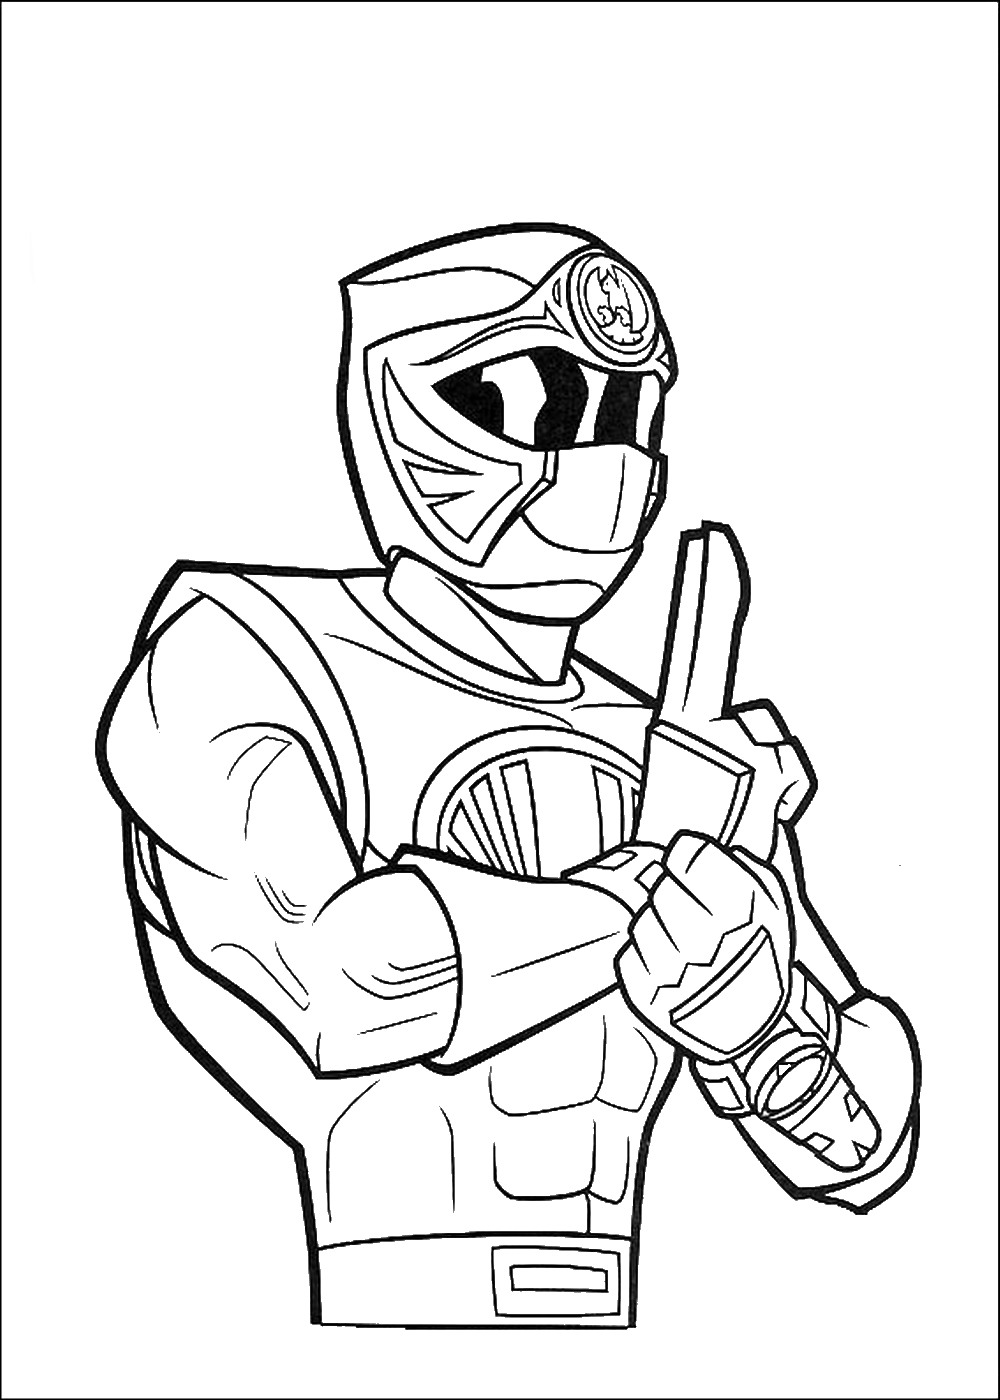 power ranger color pages free easy to print power rangers coloring pages tulamama pages power color ranger